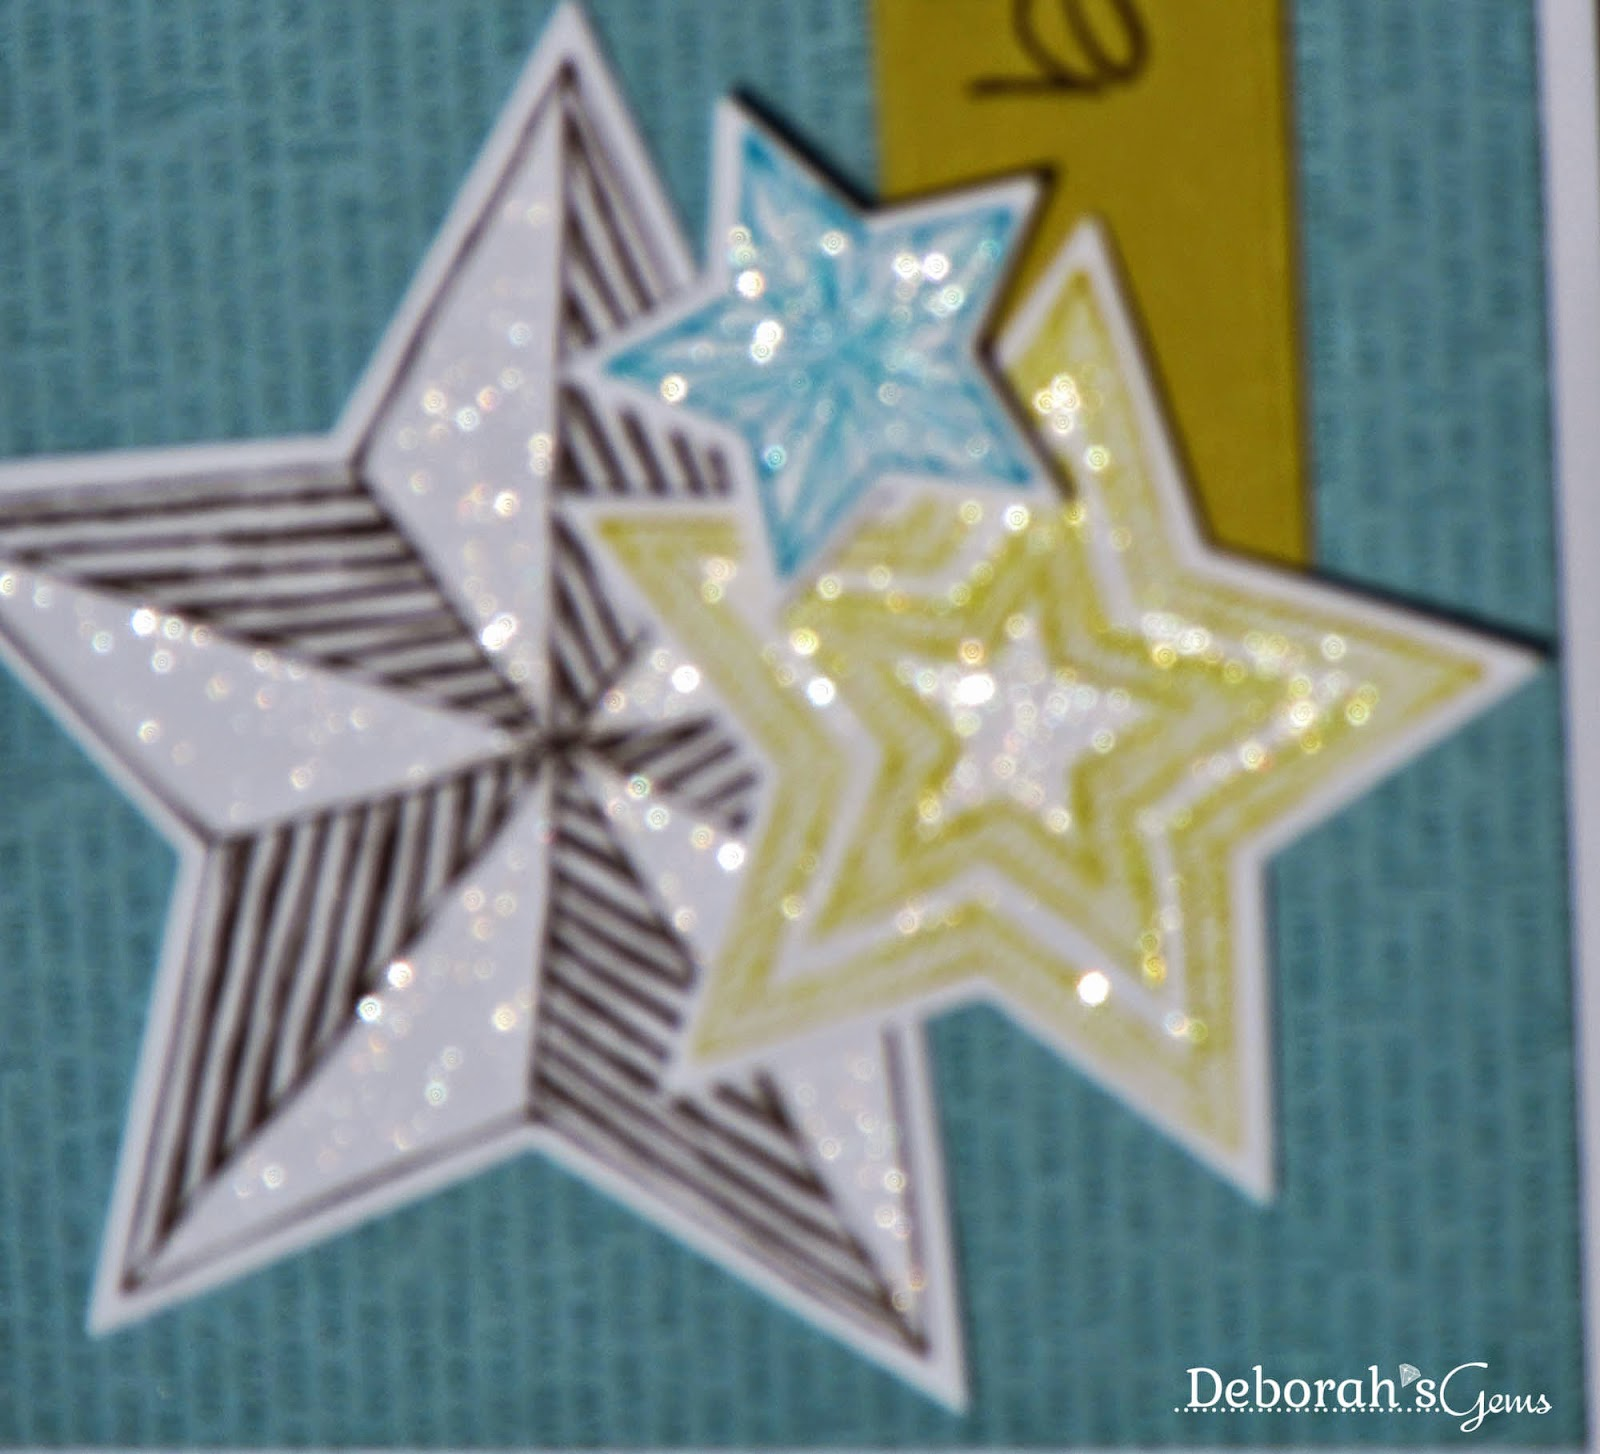 Stars detail - photo by Deborah Frings - Deborah's Gems